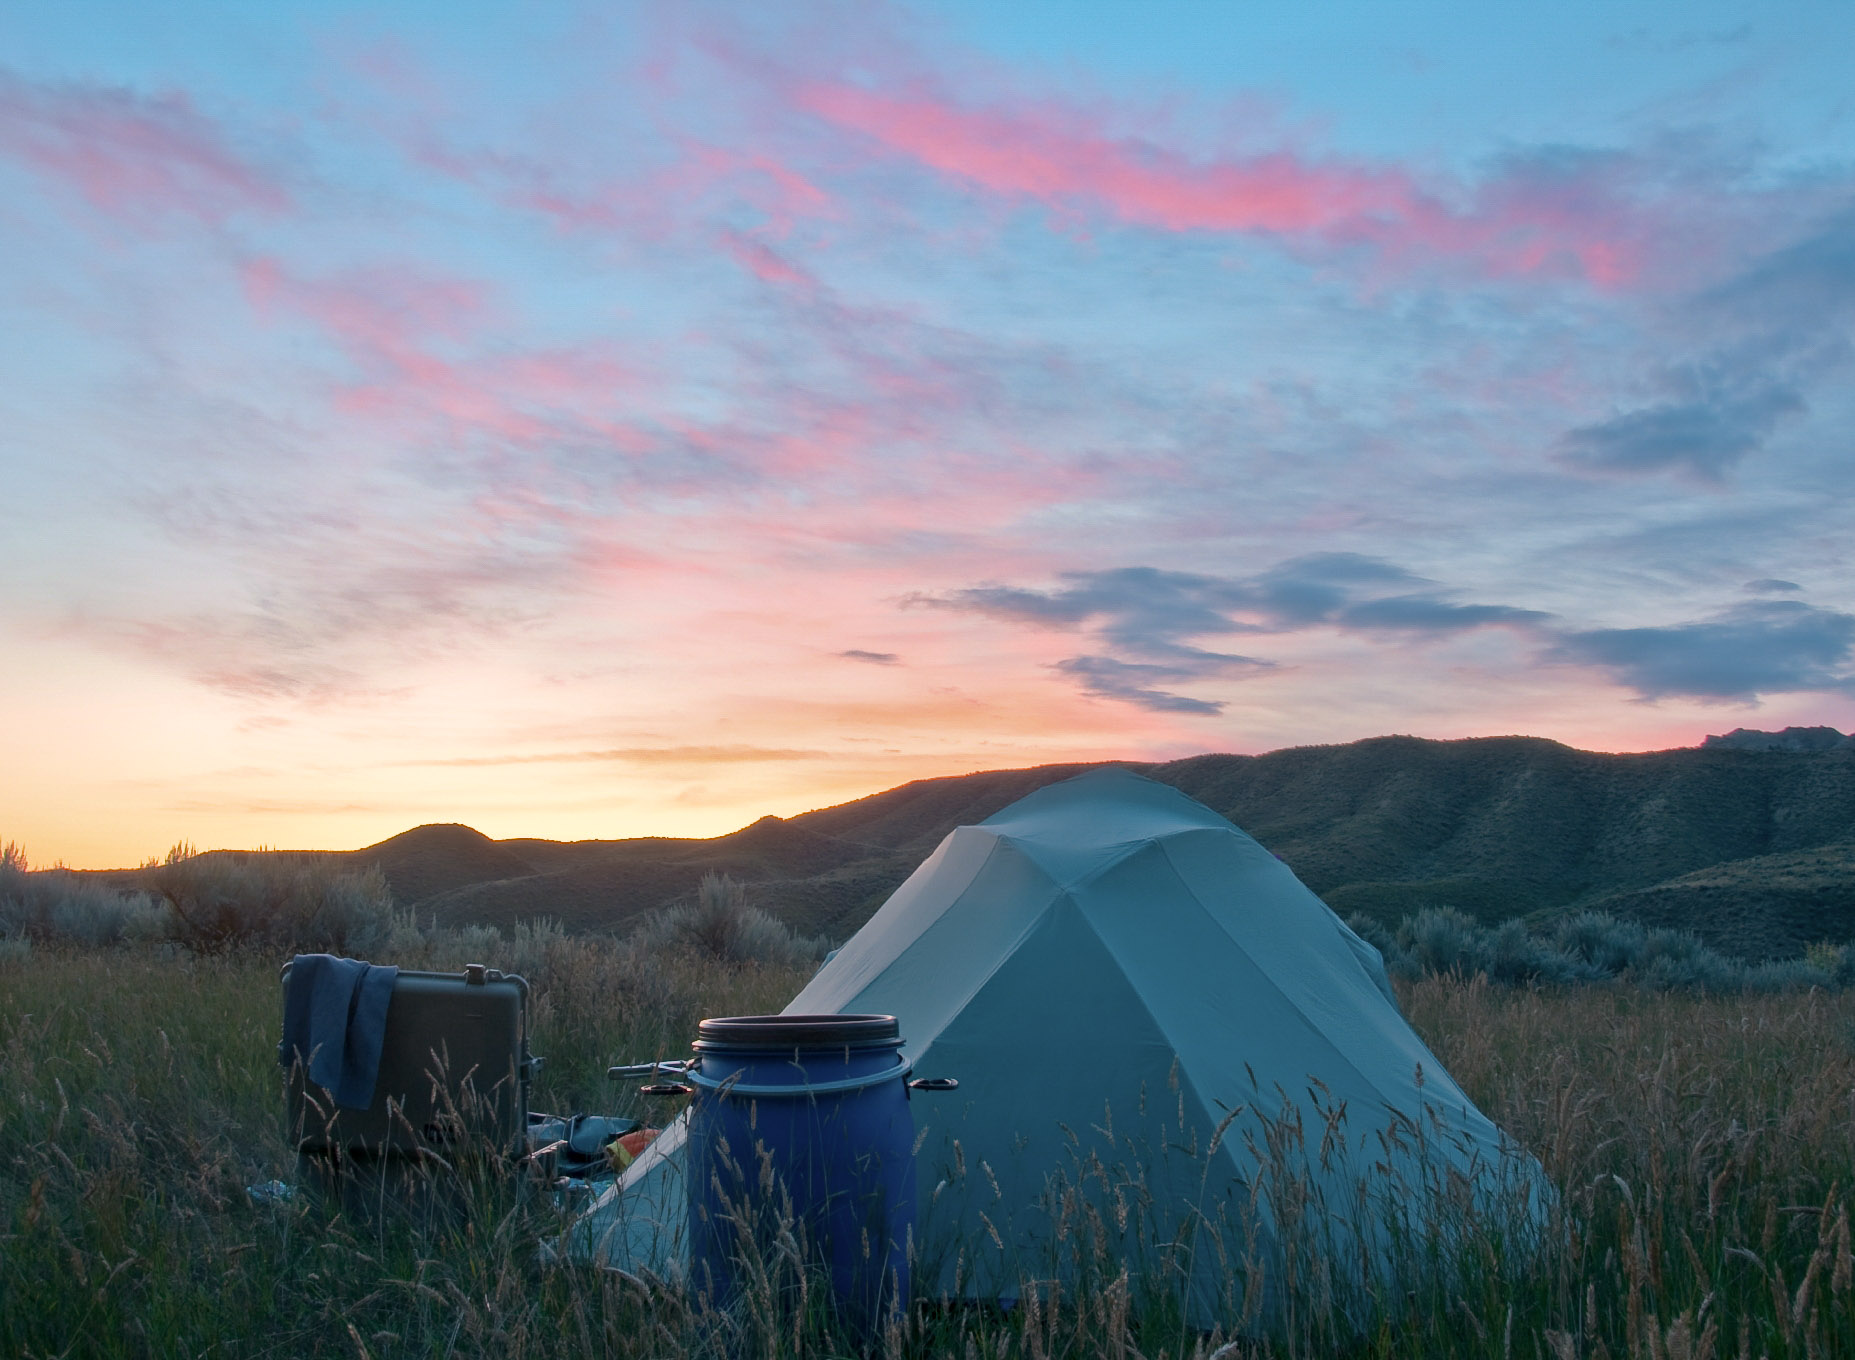 Meadow and tent at sunset, Upper Missouri River Breaks National Monument, Montana